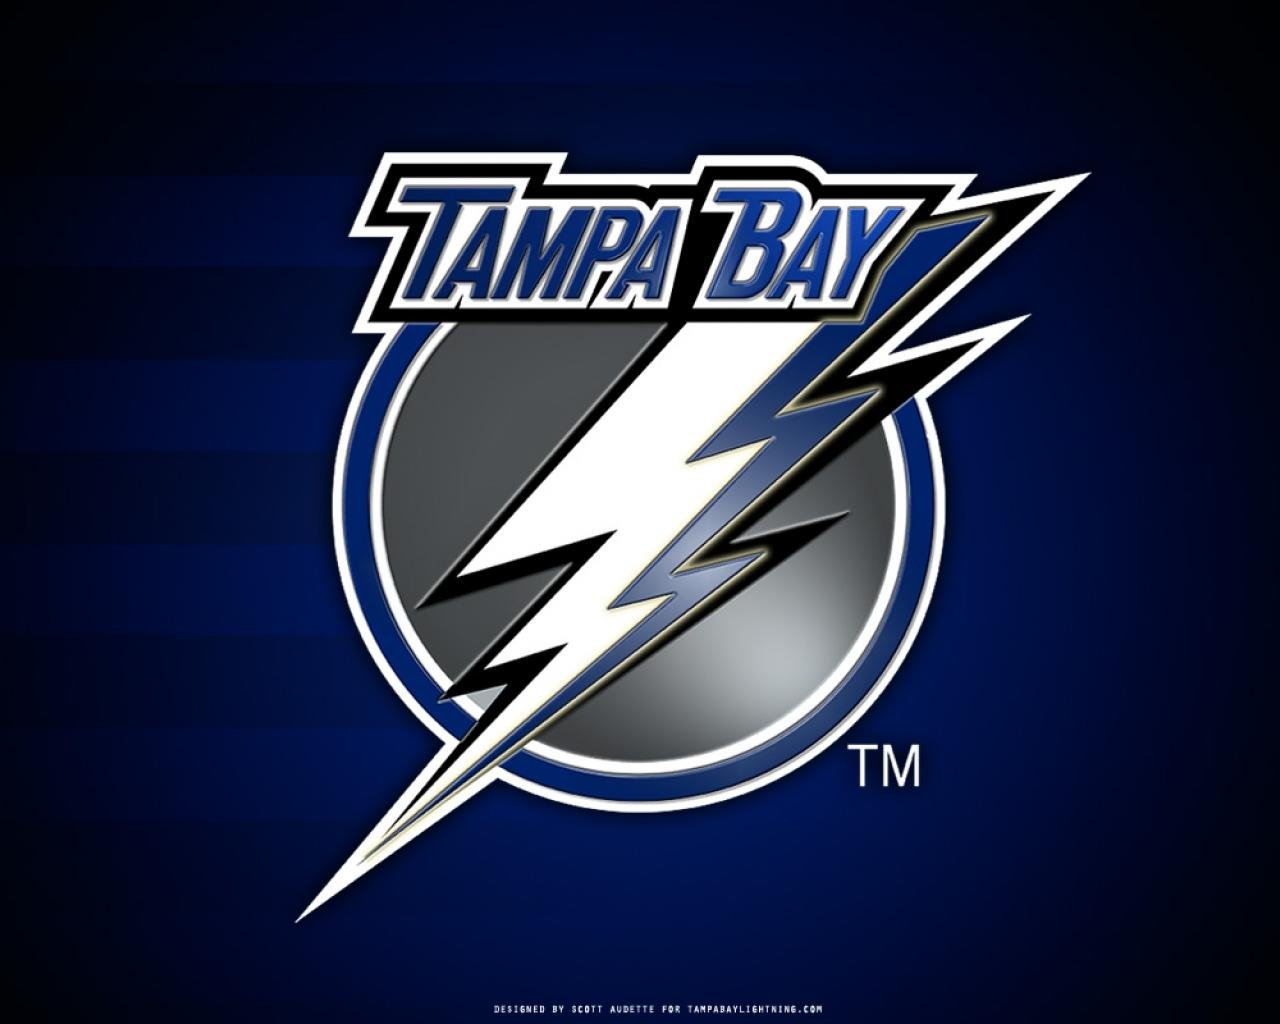 Nhl tampa bay lightning wallpaper HQ WALLPAPER   168604 1280x1024